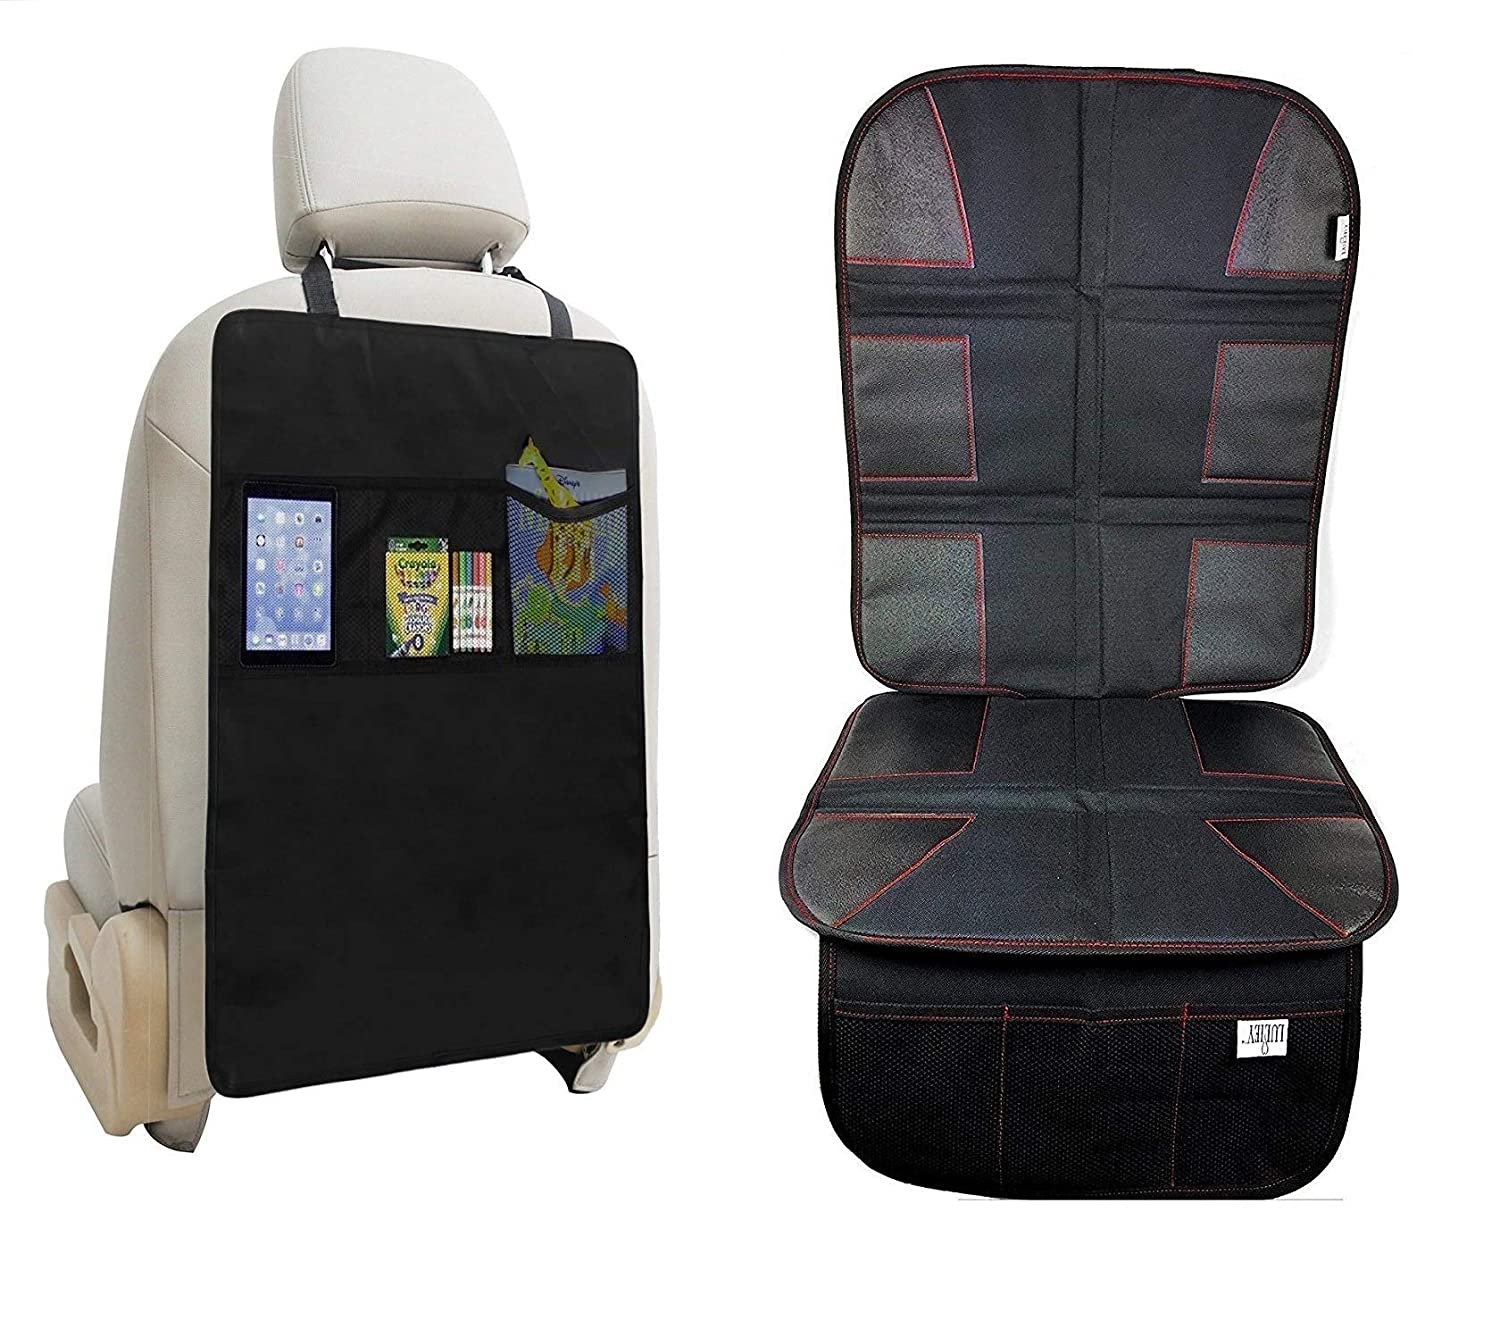 Luliey Car Seat Protector for Leather Seats + Kick Mat Auto Seat Back Protector with 3 Organizer Pocket Durable Quality Protects Automotive Vehicle Cloth Upholstery or Leather Seats